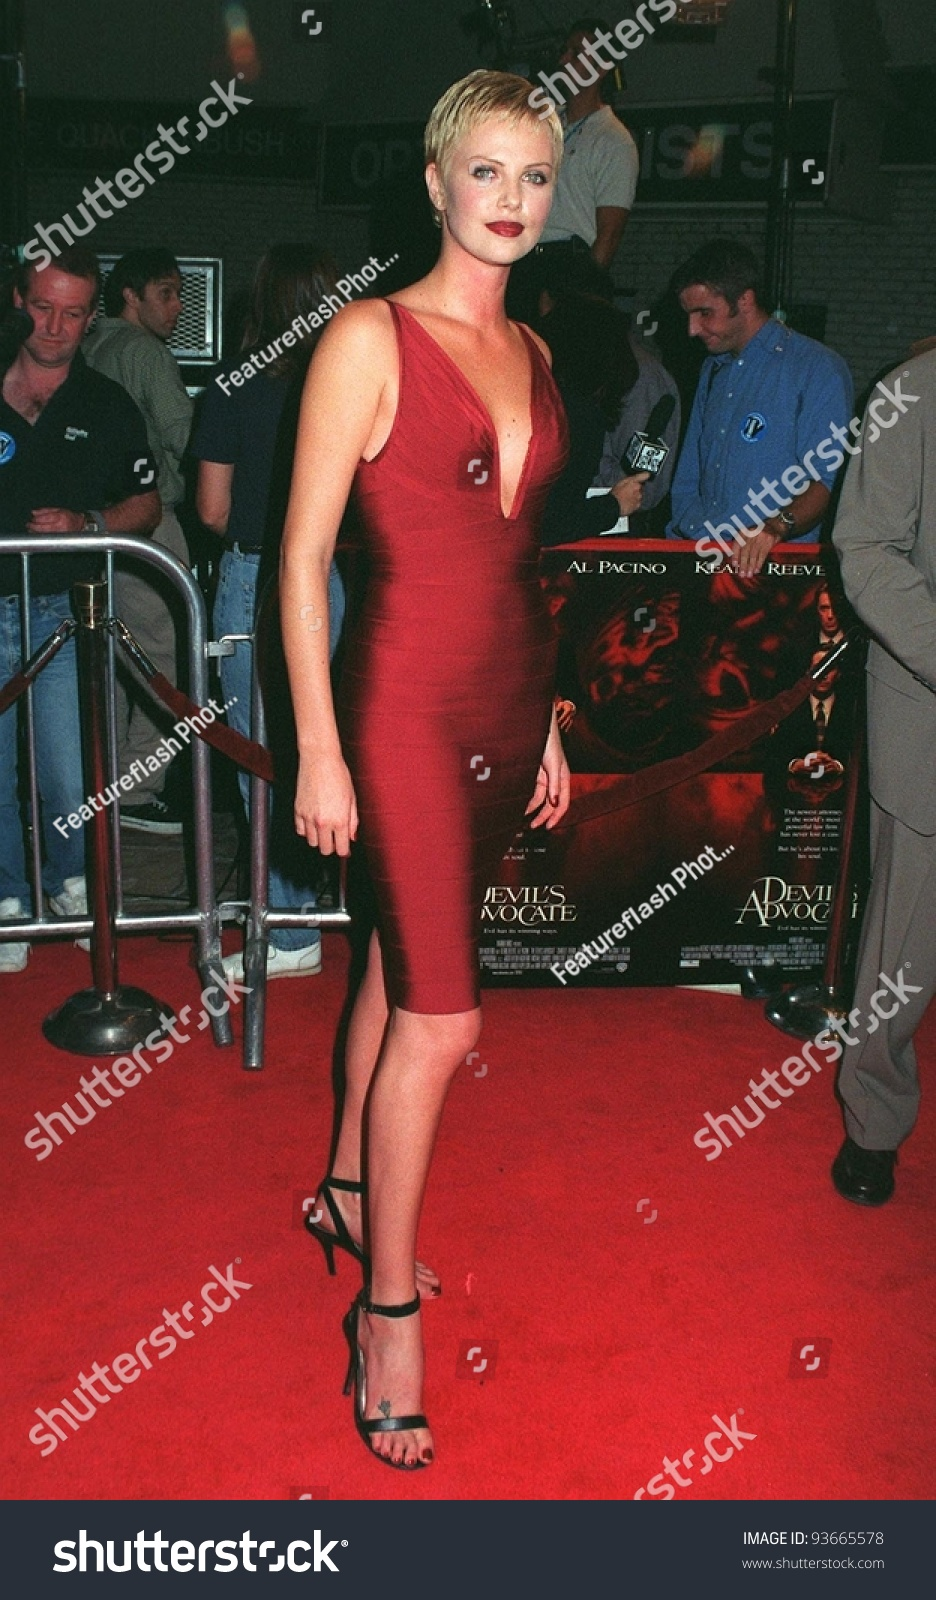 Advocate devils charlize theron Charlize Theron: